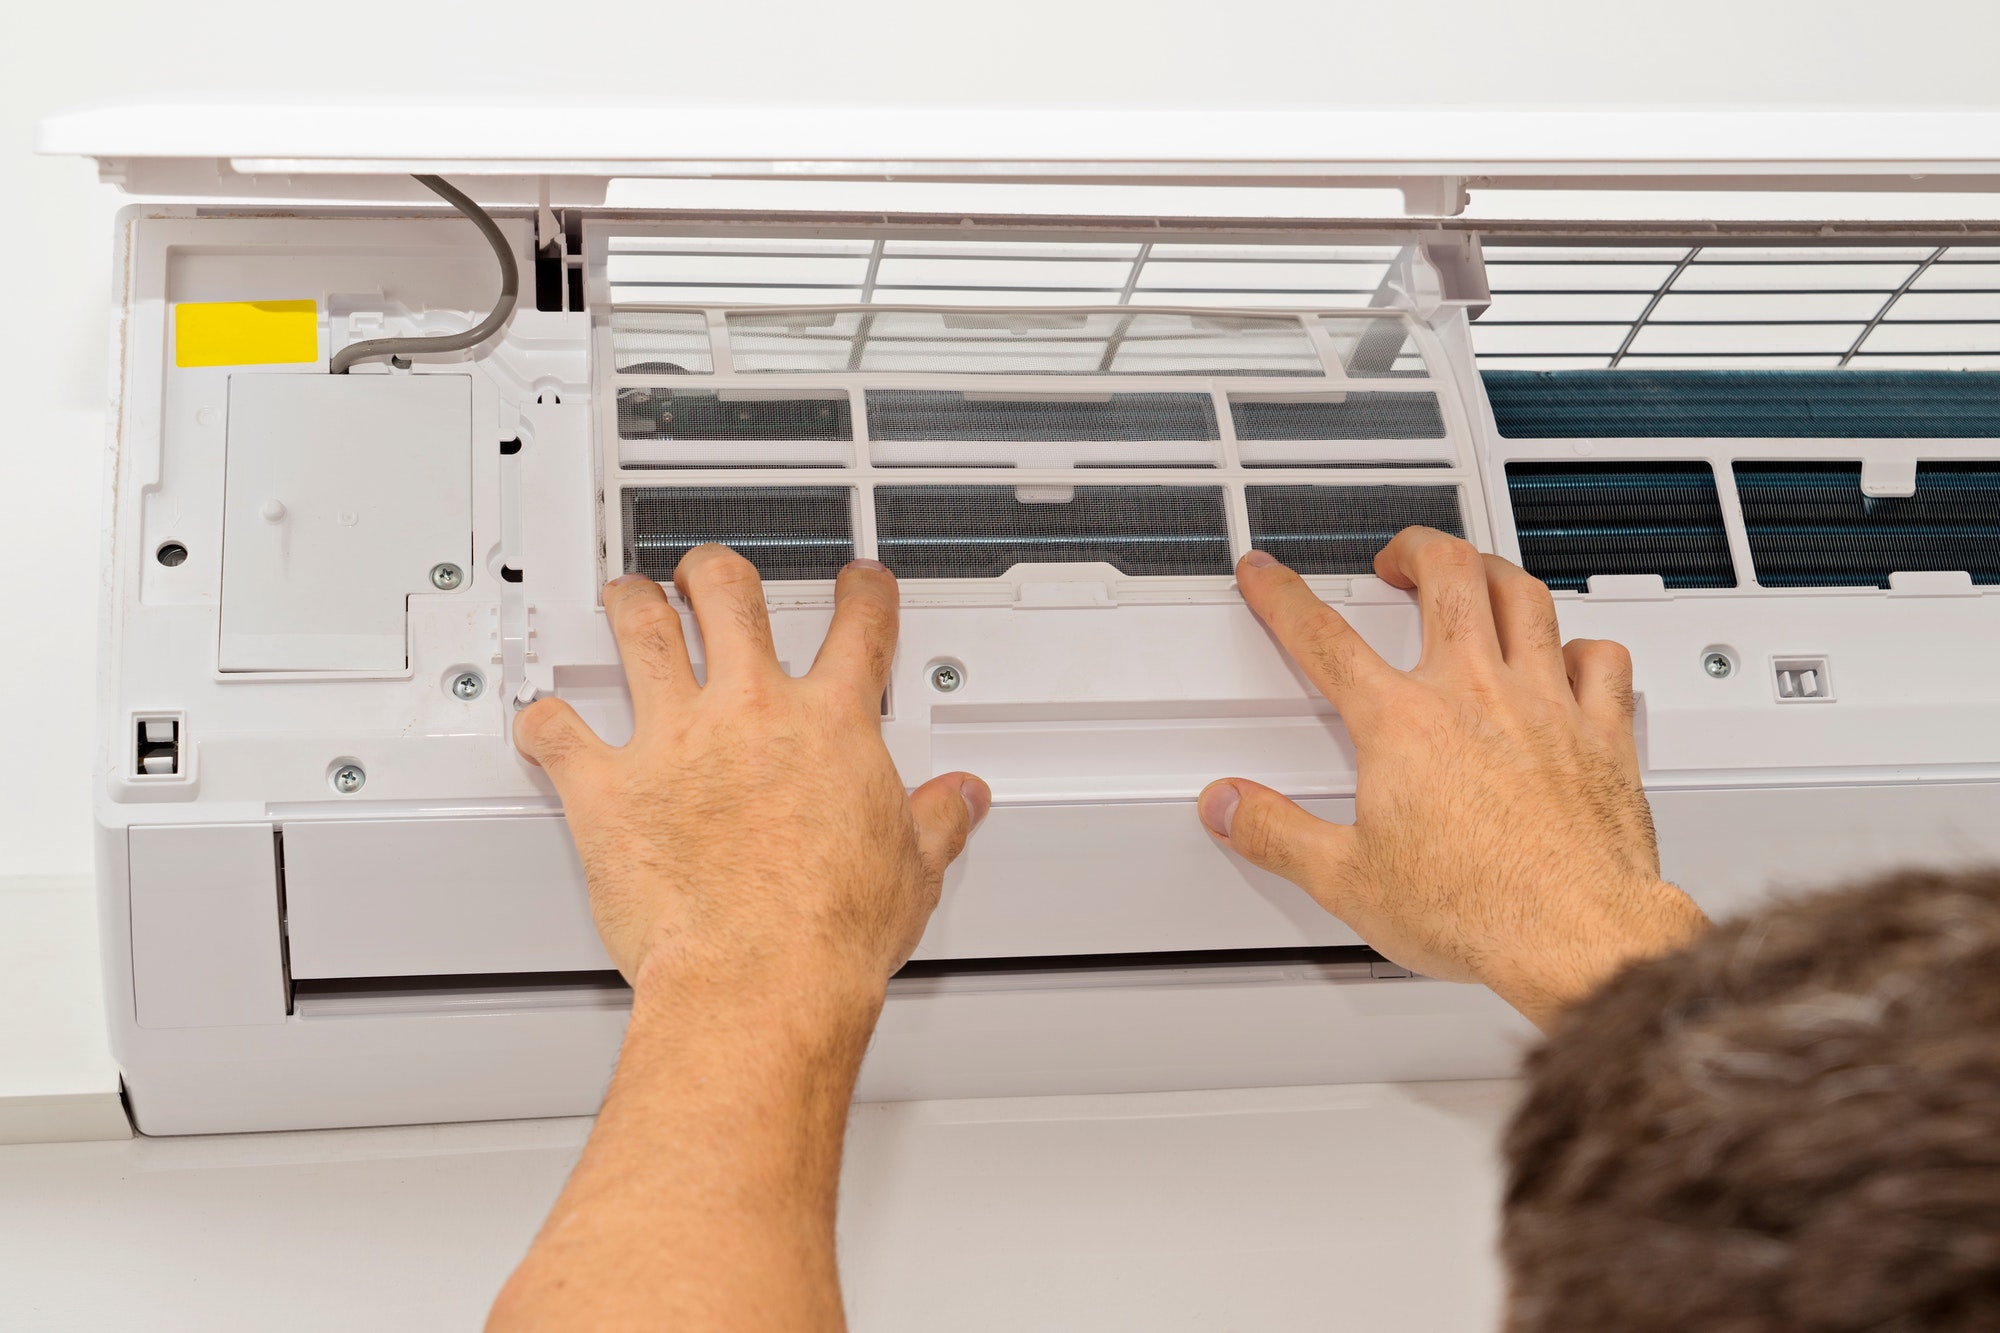 !! NOMINATED!! Changing the filter of the air conditioner